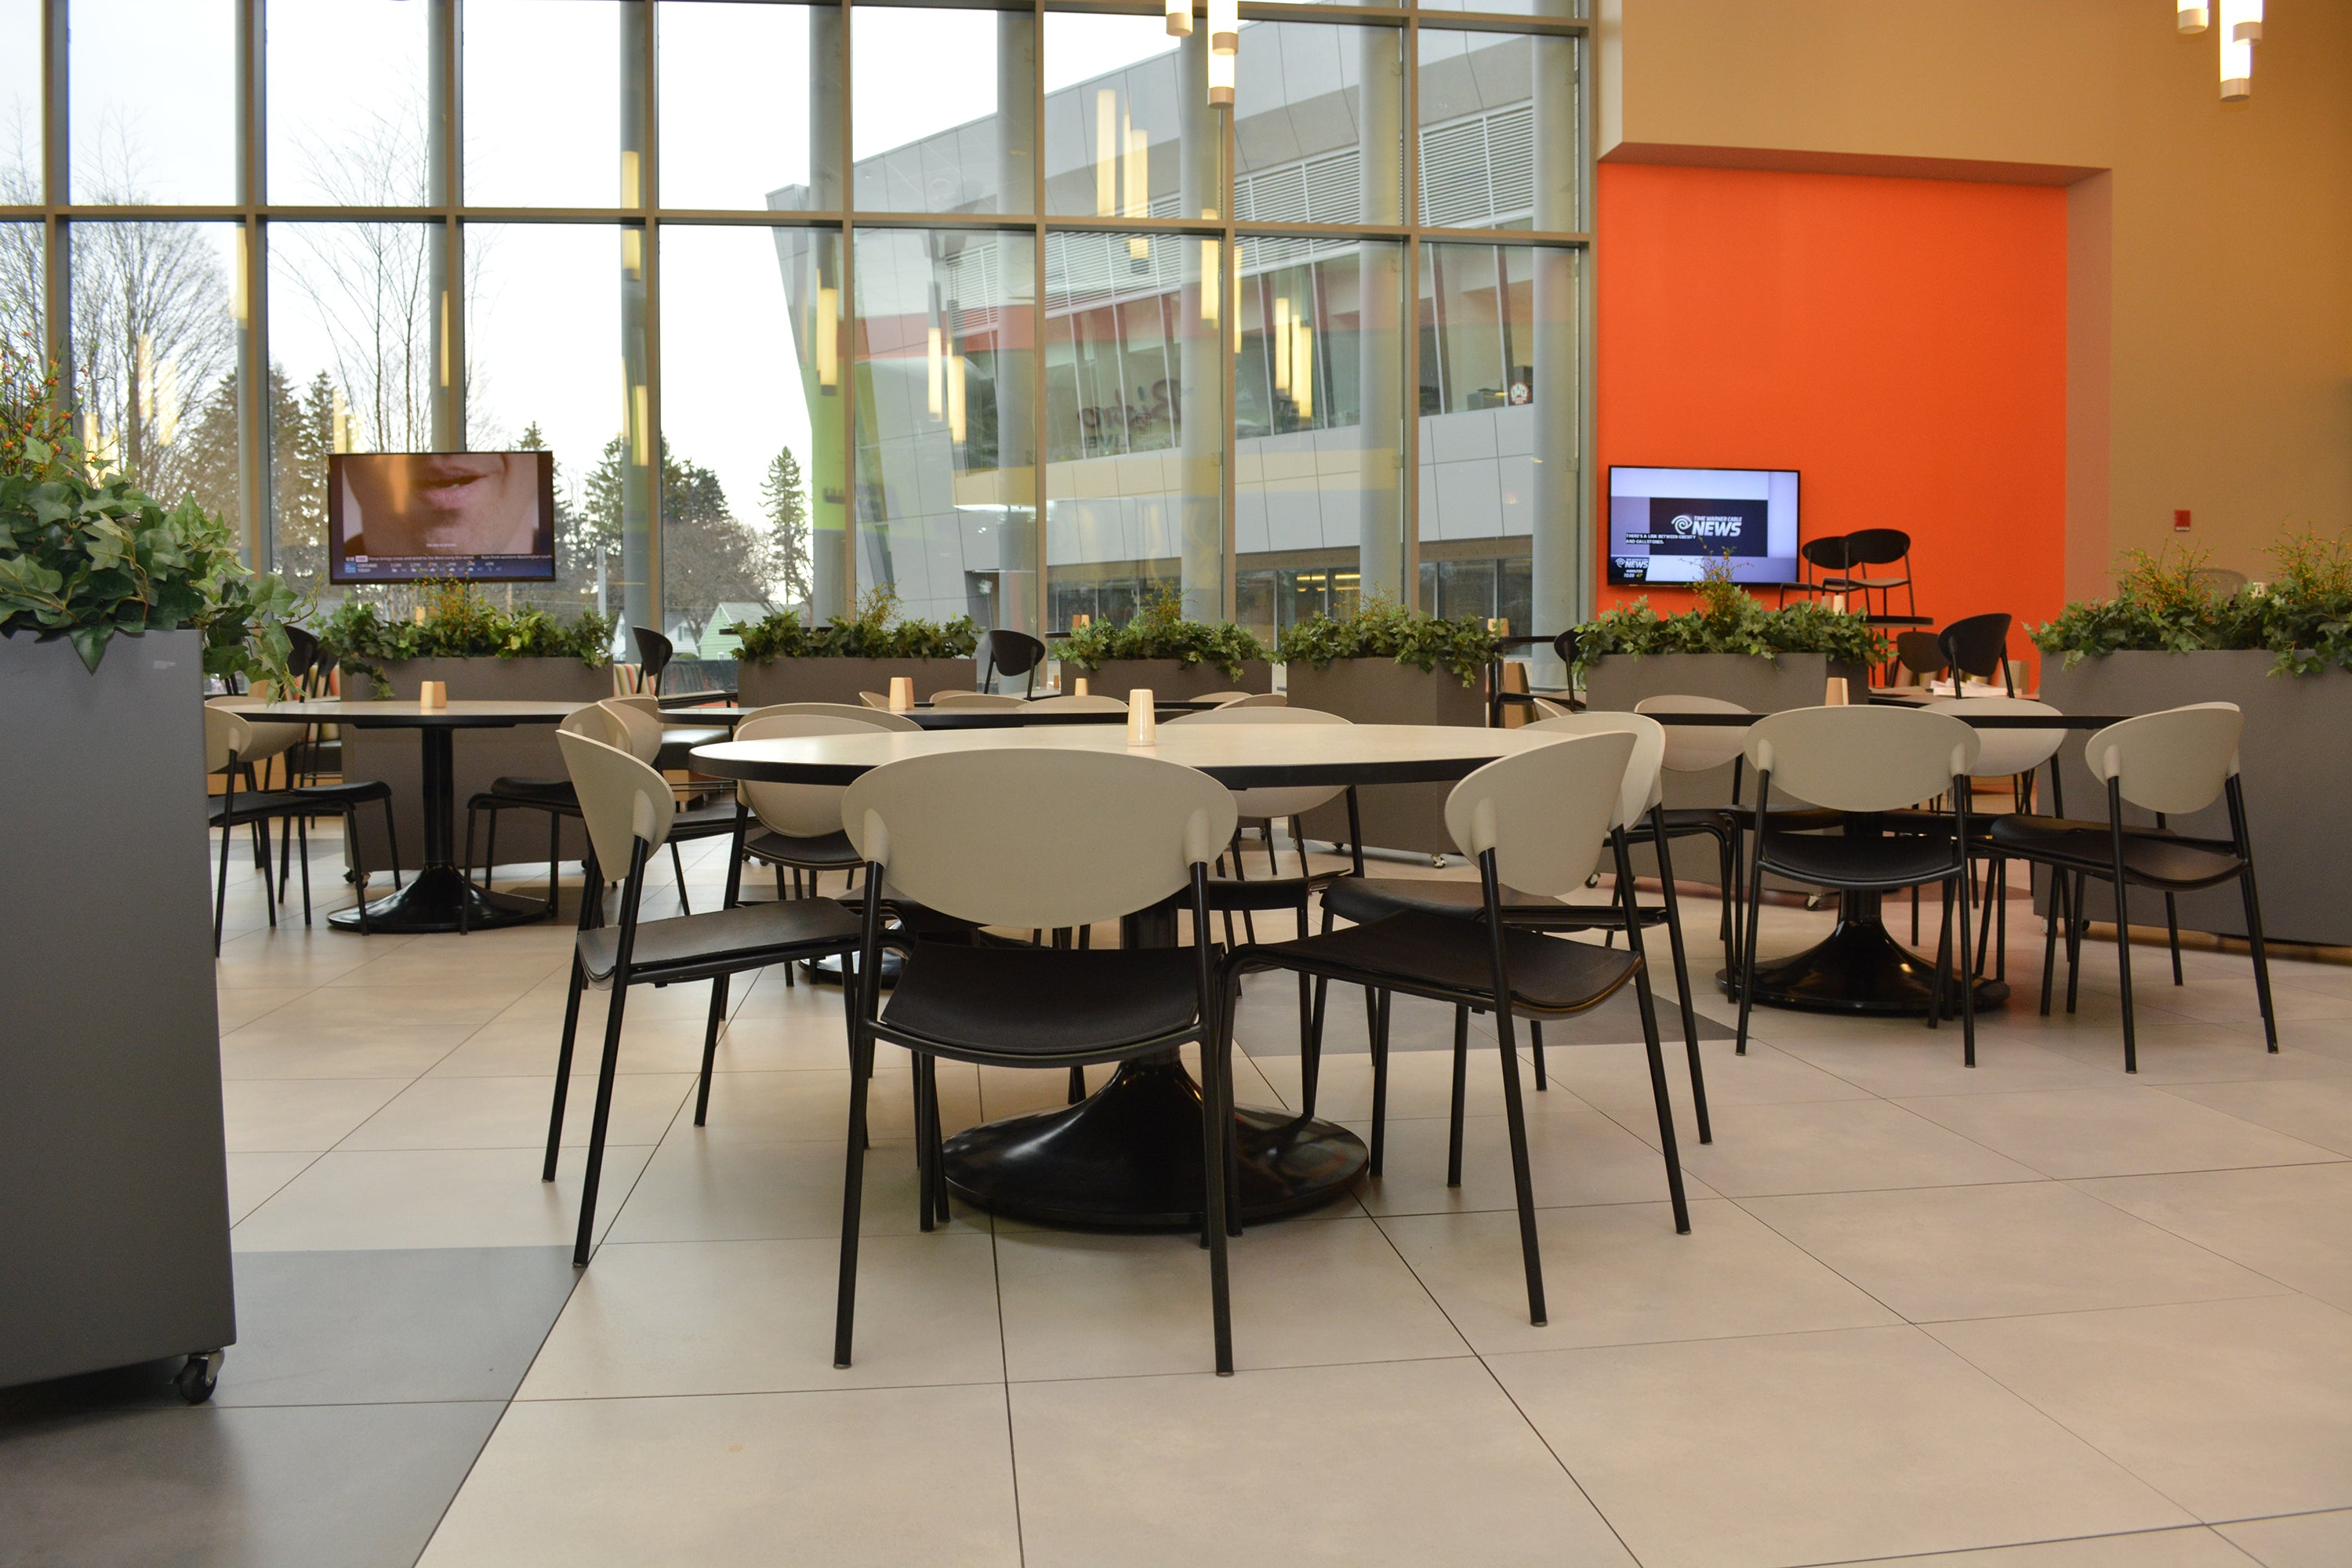 Modern Elite indoor planters at State University of New York campus in Cortland New York with casters